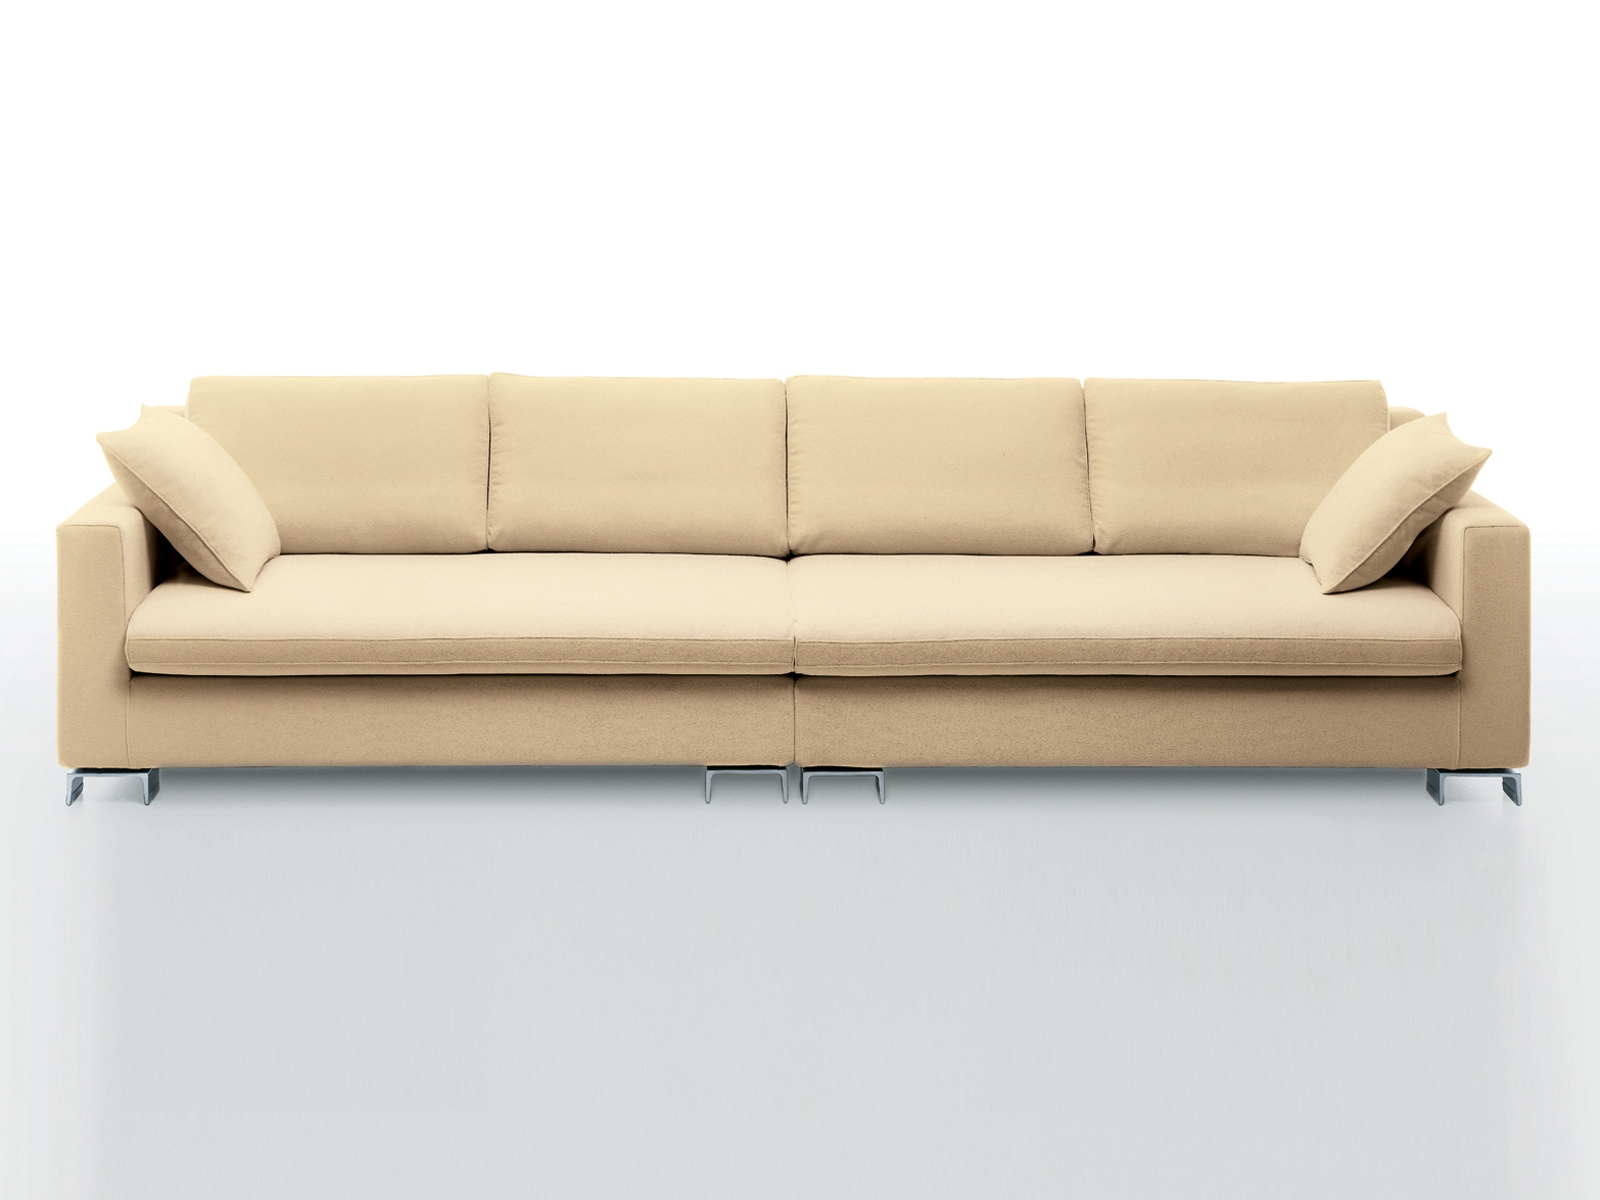 I 4 Mariani Sofas Archiproducts Inside 4 Seater Couch (Image 15 of 15)